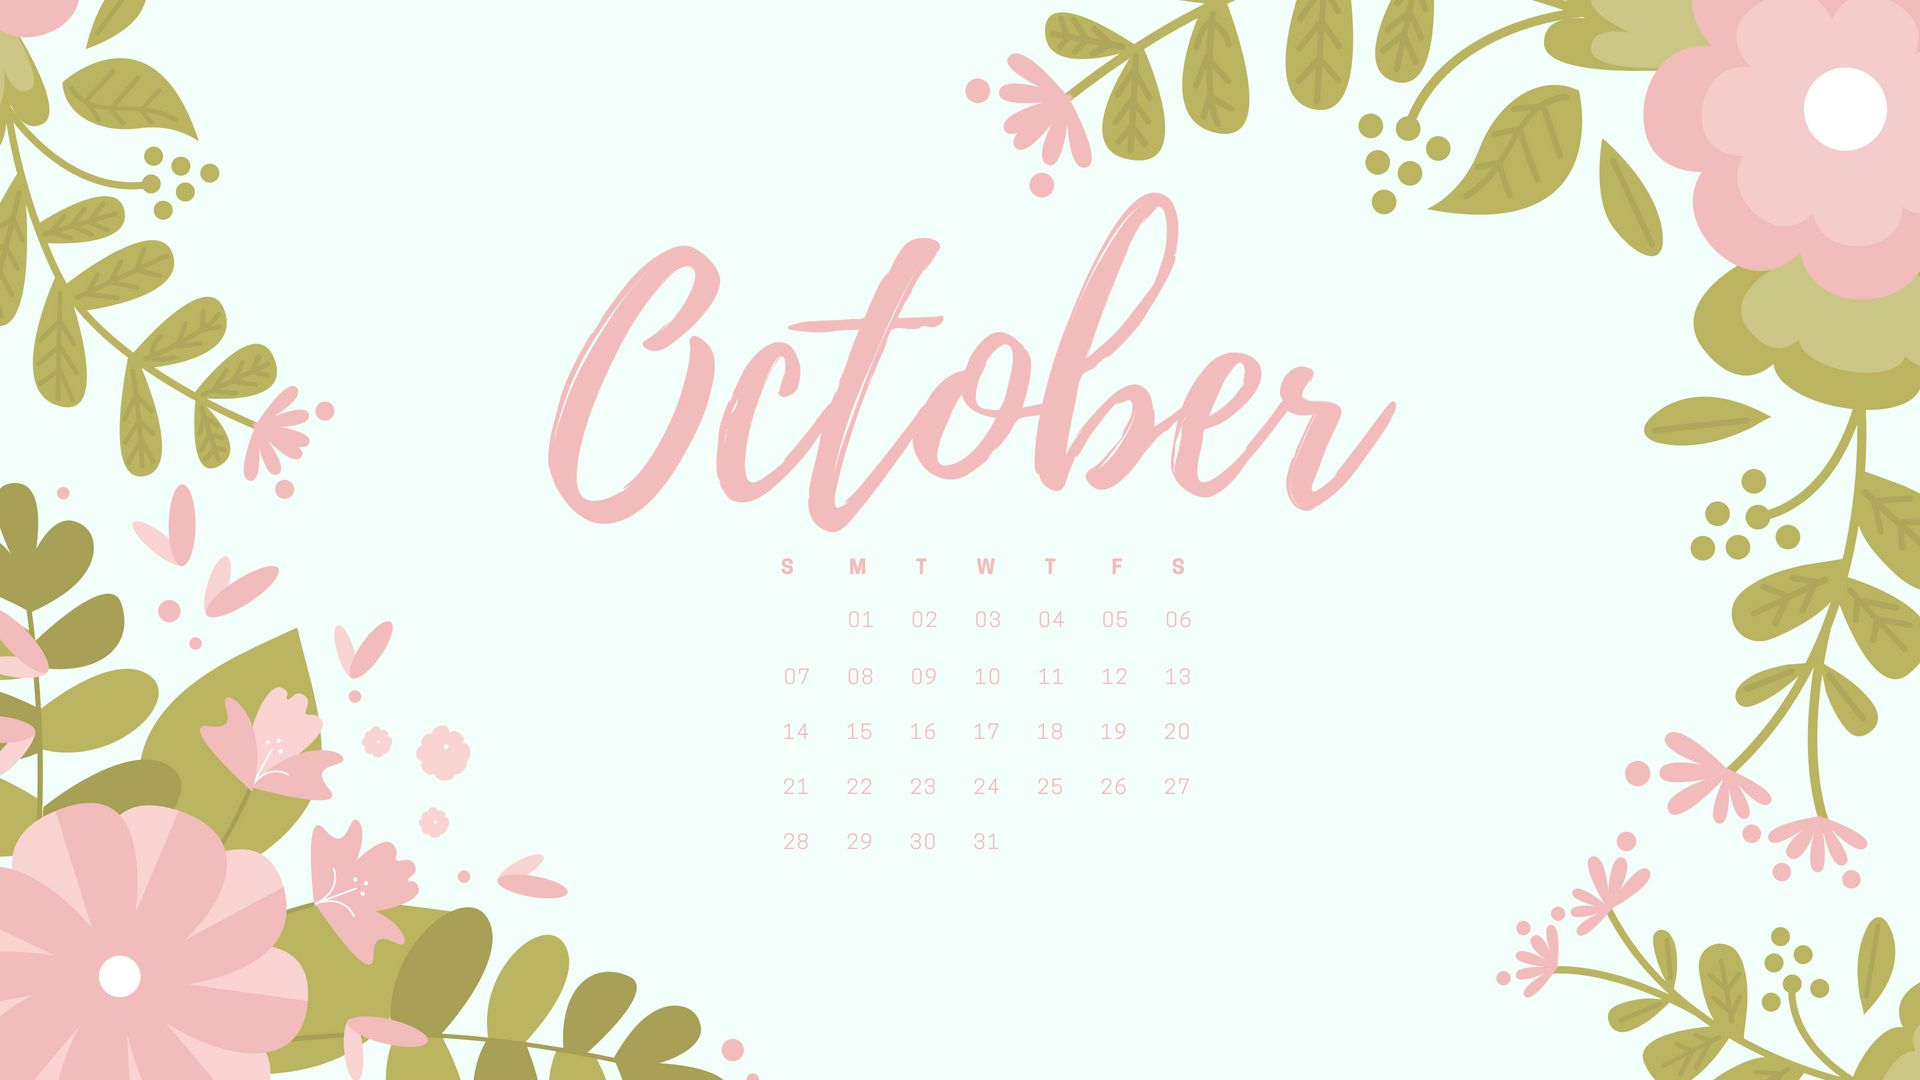 October 2018 Calendar Wallpaper